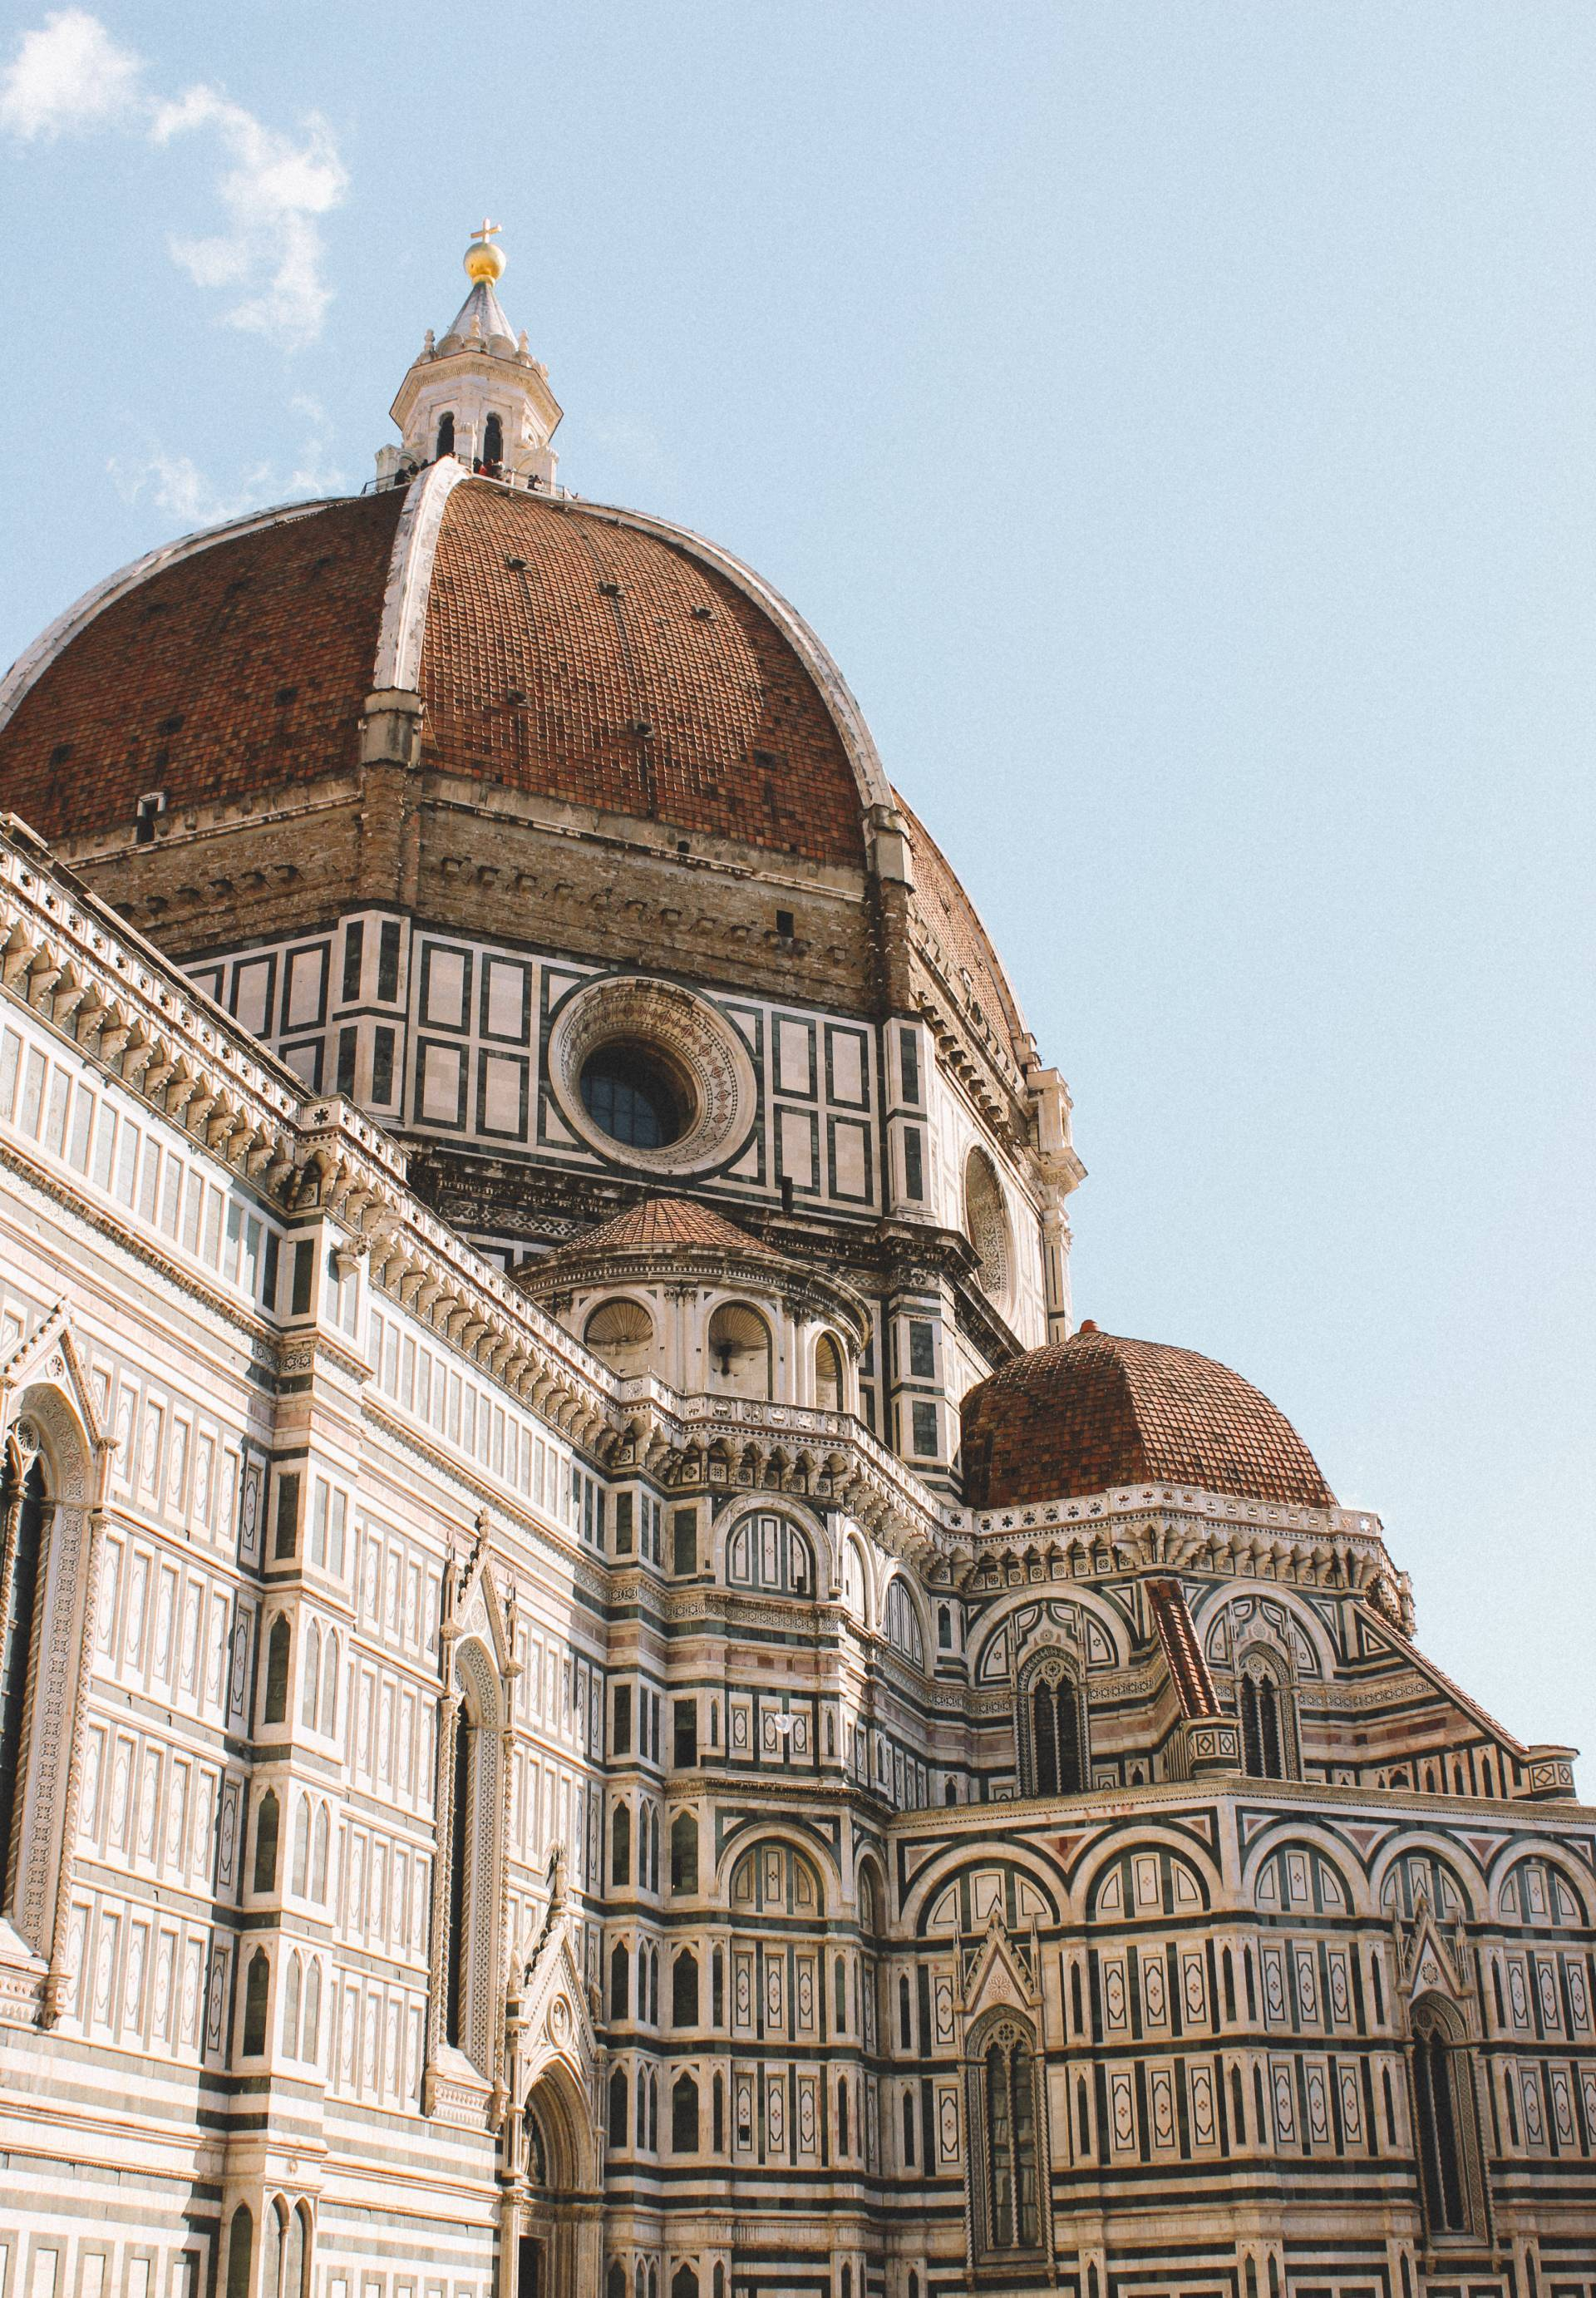 The Duomo, Firenze, Florence, Italy